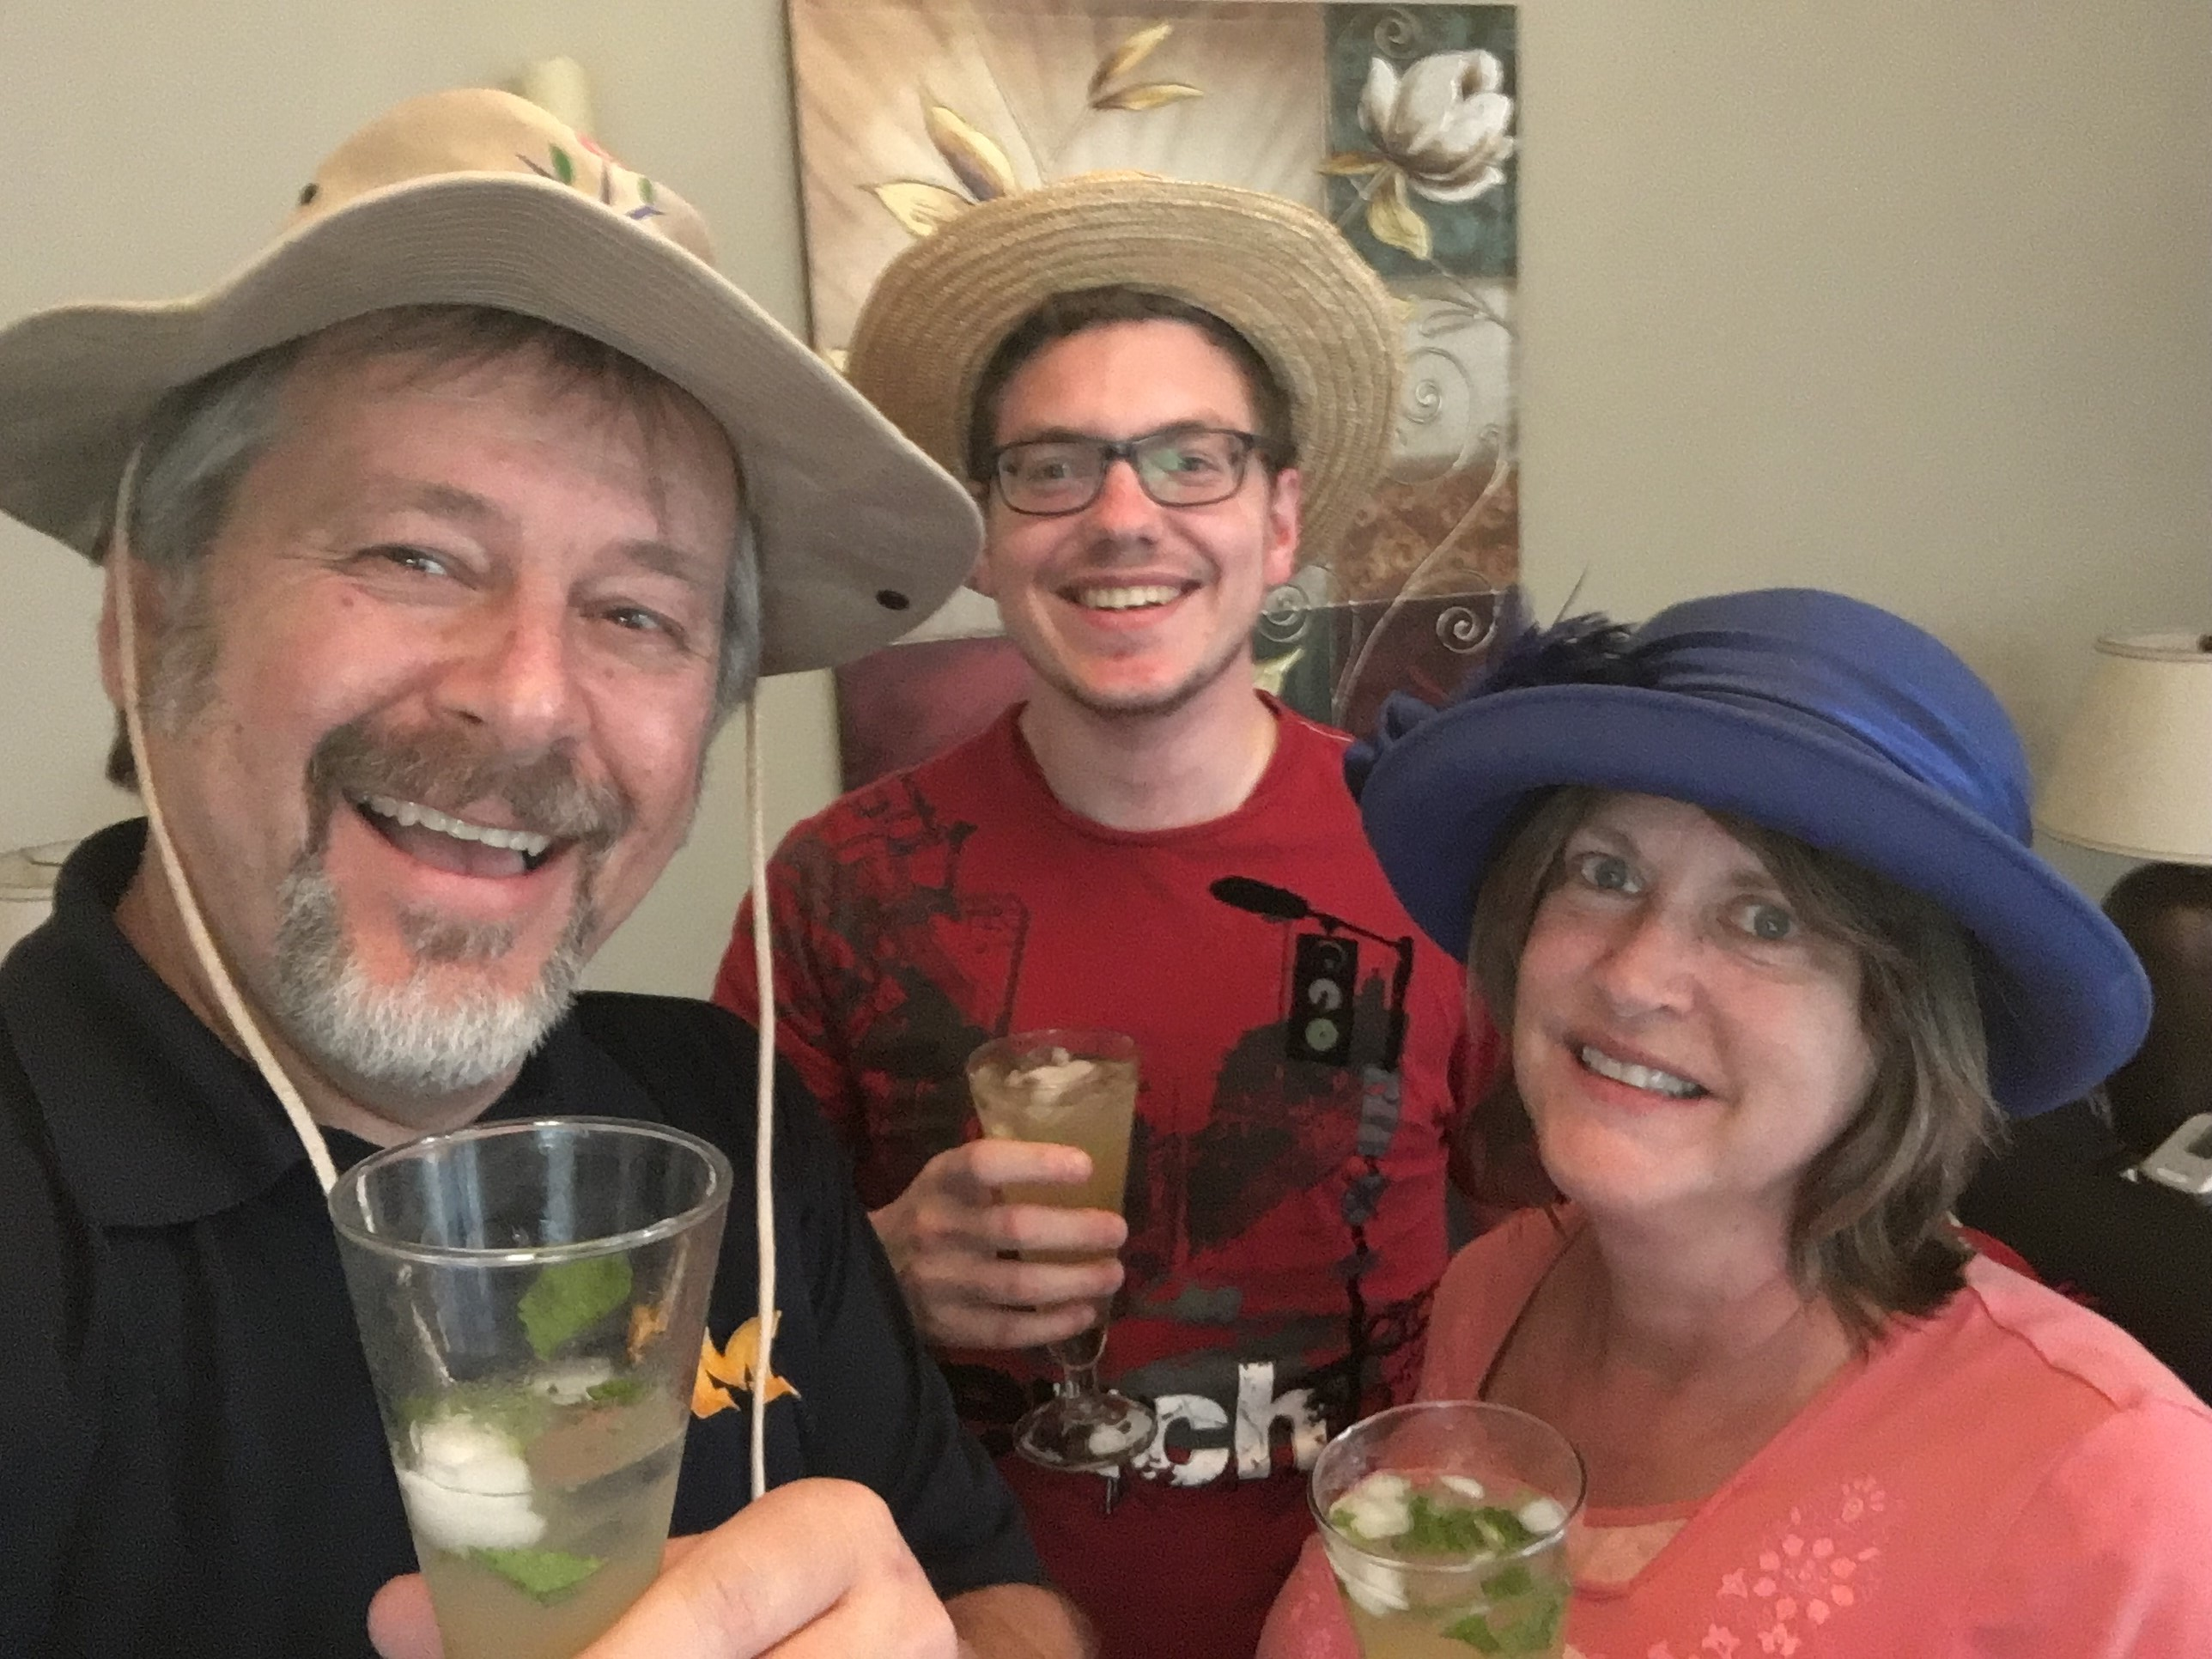 Kentucky Derby Day means mint juleps and funky hats